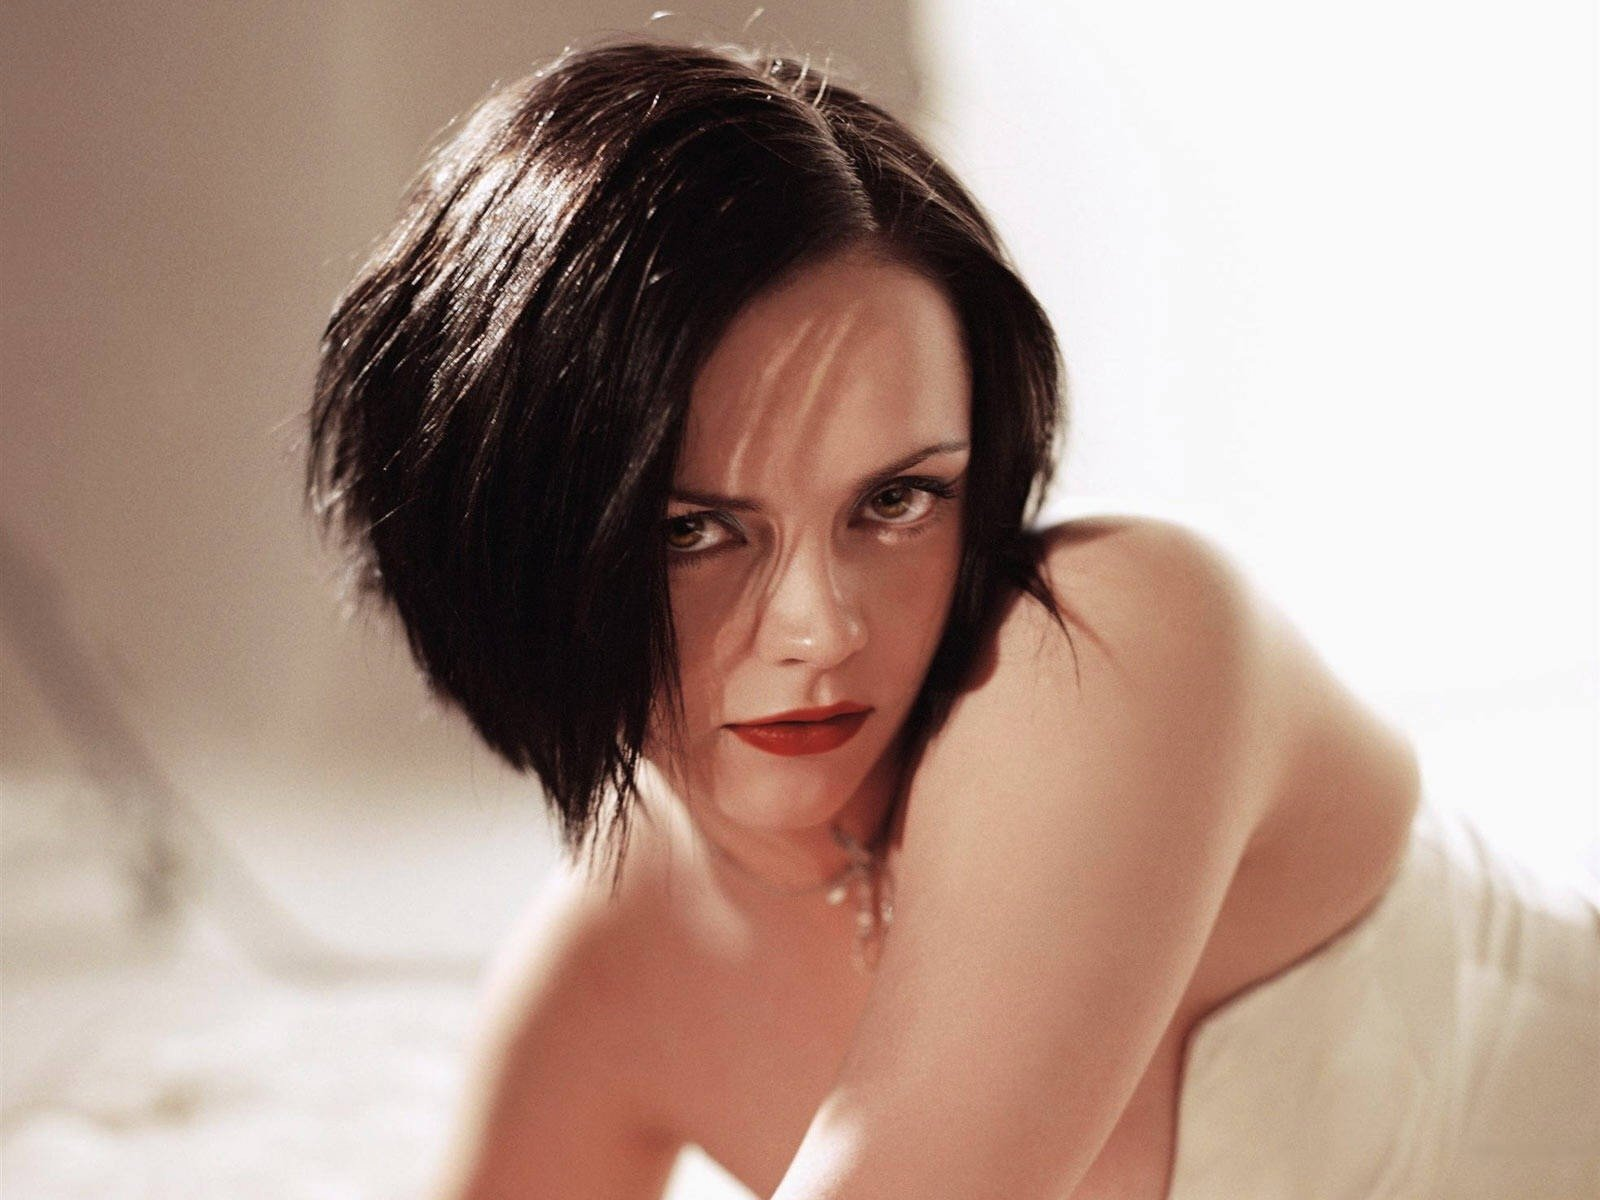 Wallpaper di Christina Ricci